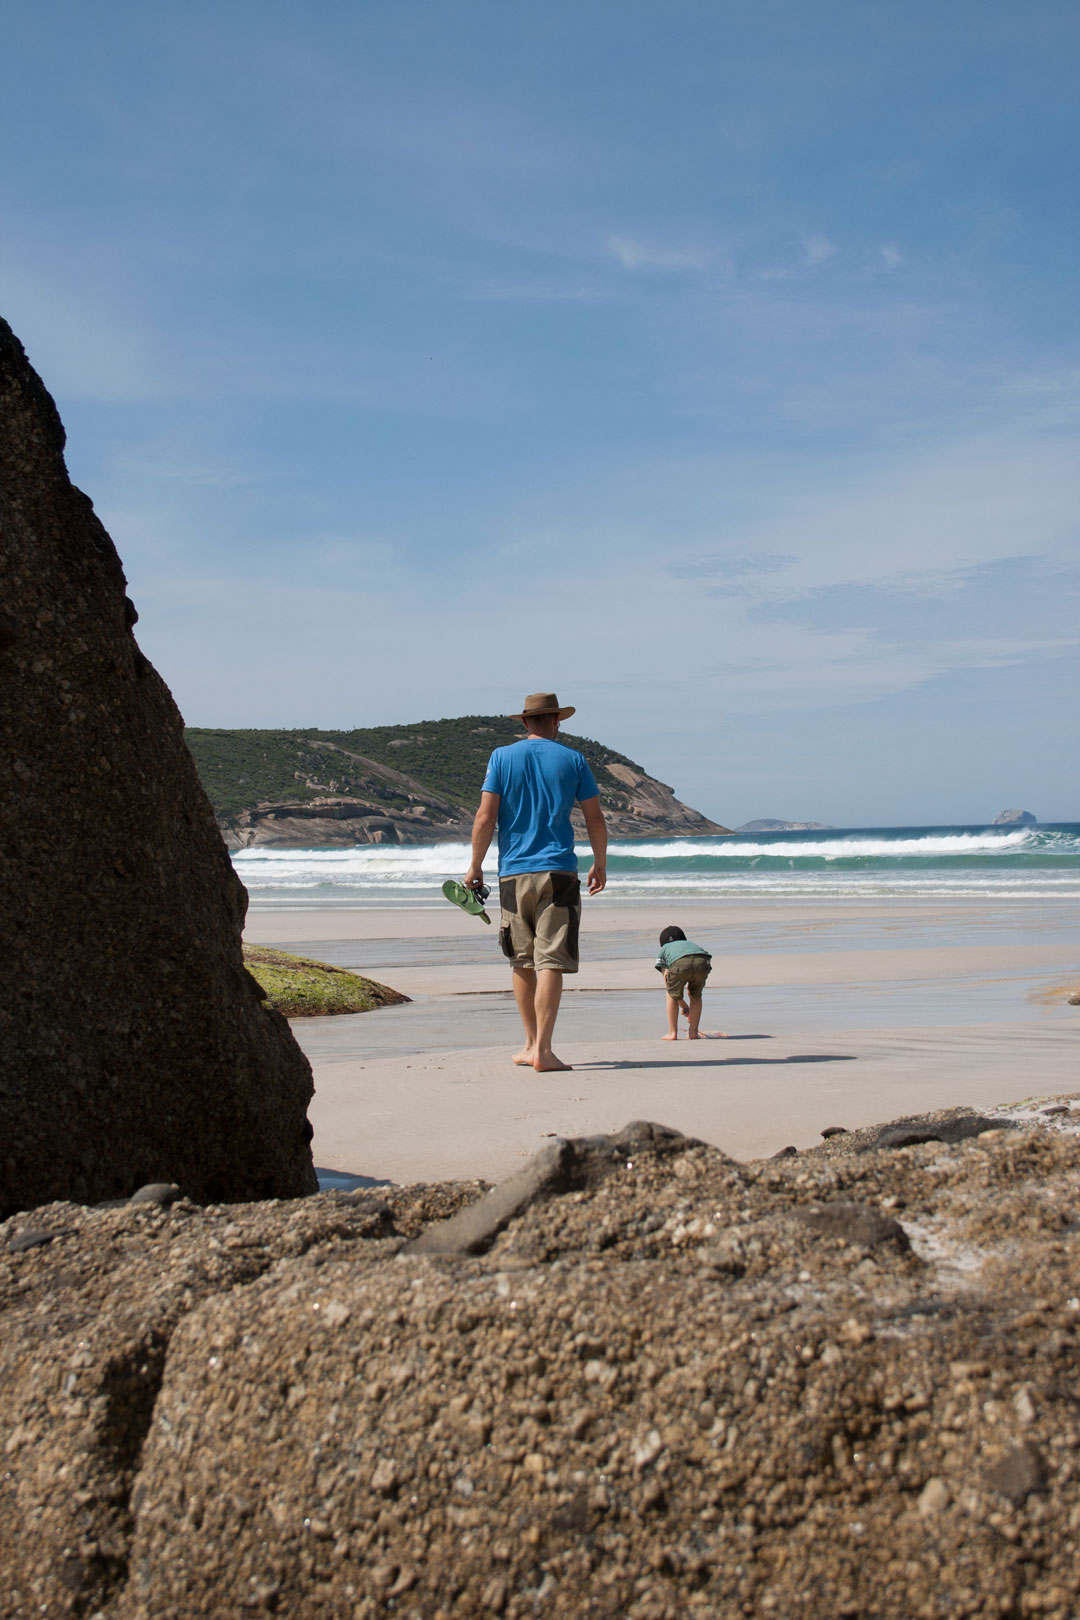 wilsons promontory national park beach